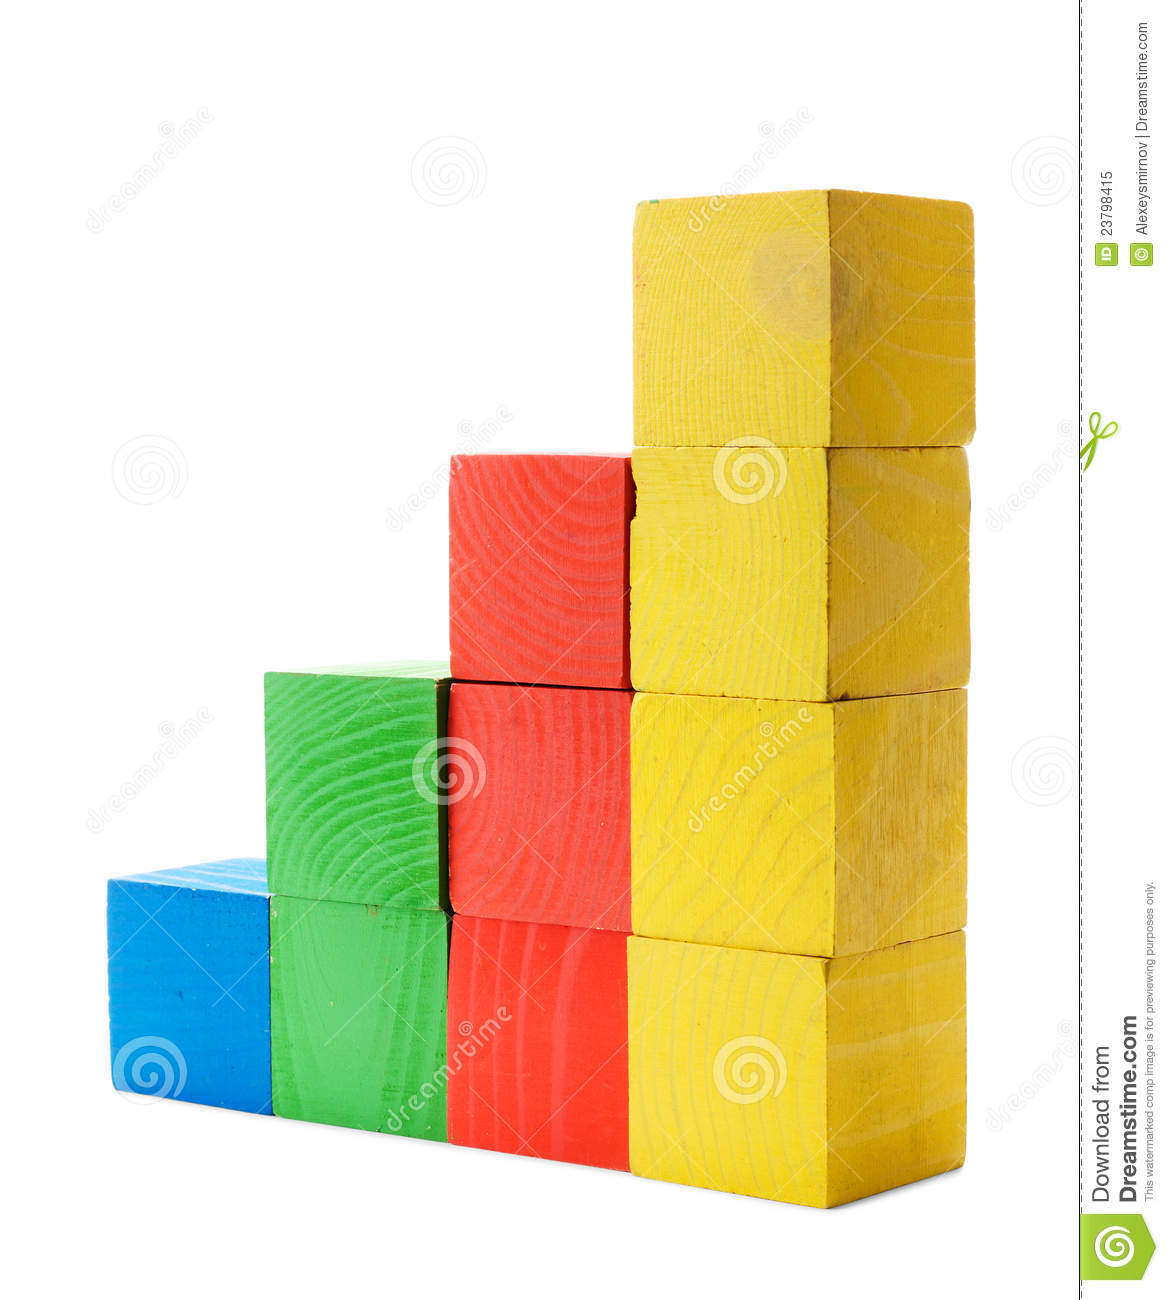 Colored Wood Blocks ~ Color diagram chart of wooden blocks royalty free stock